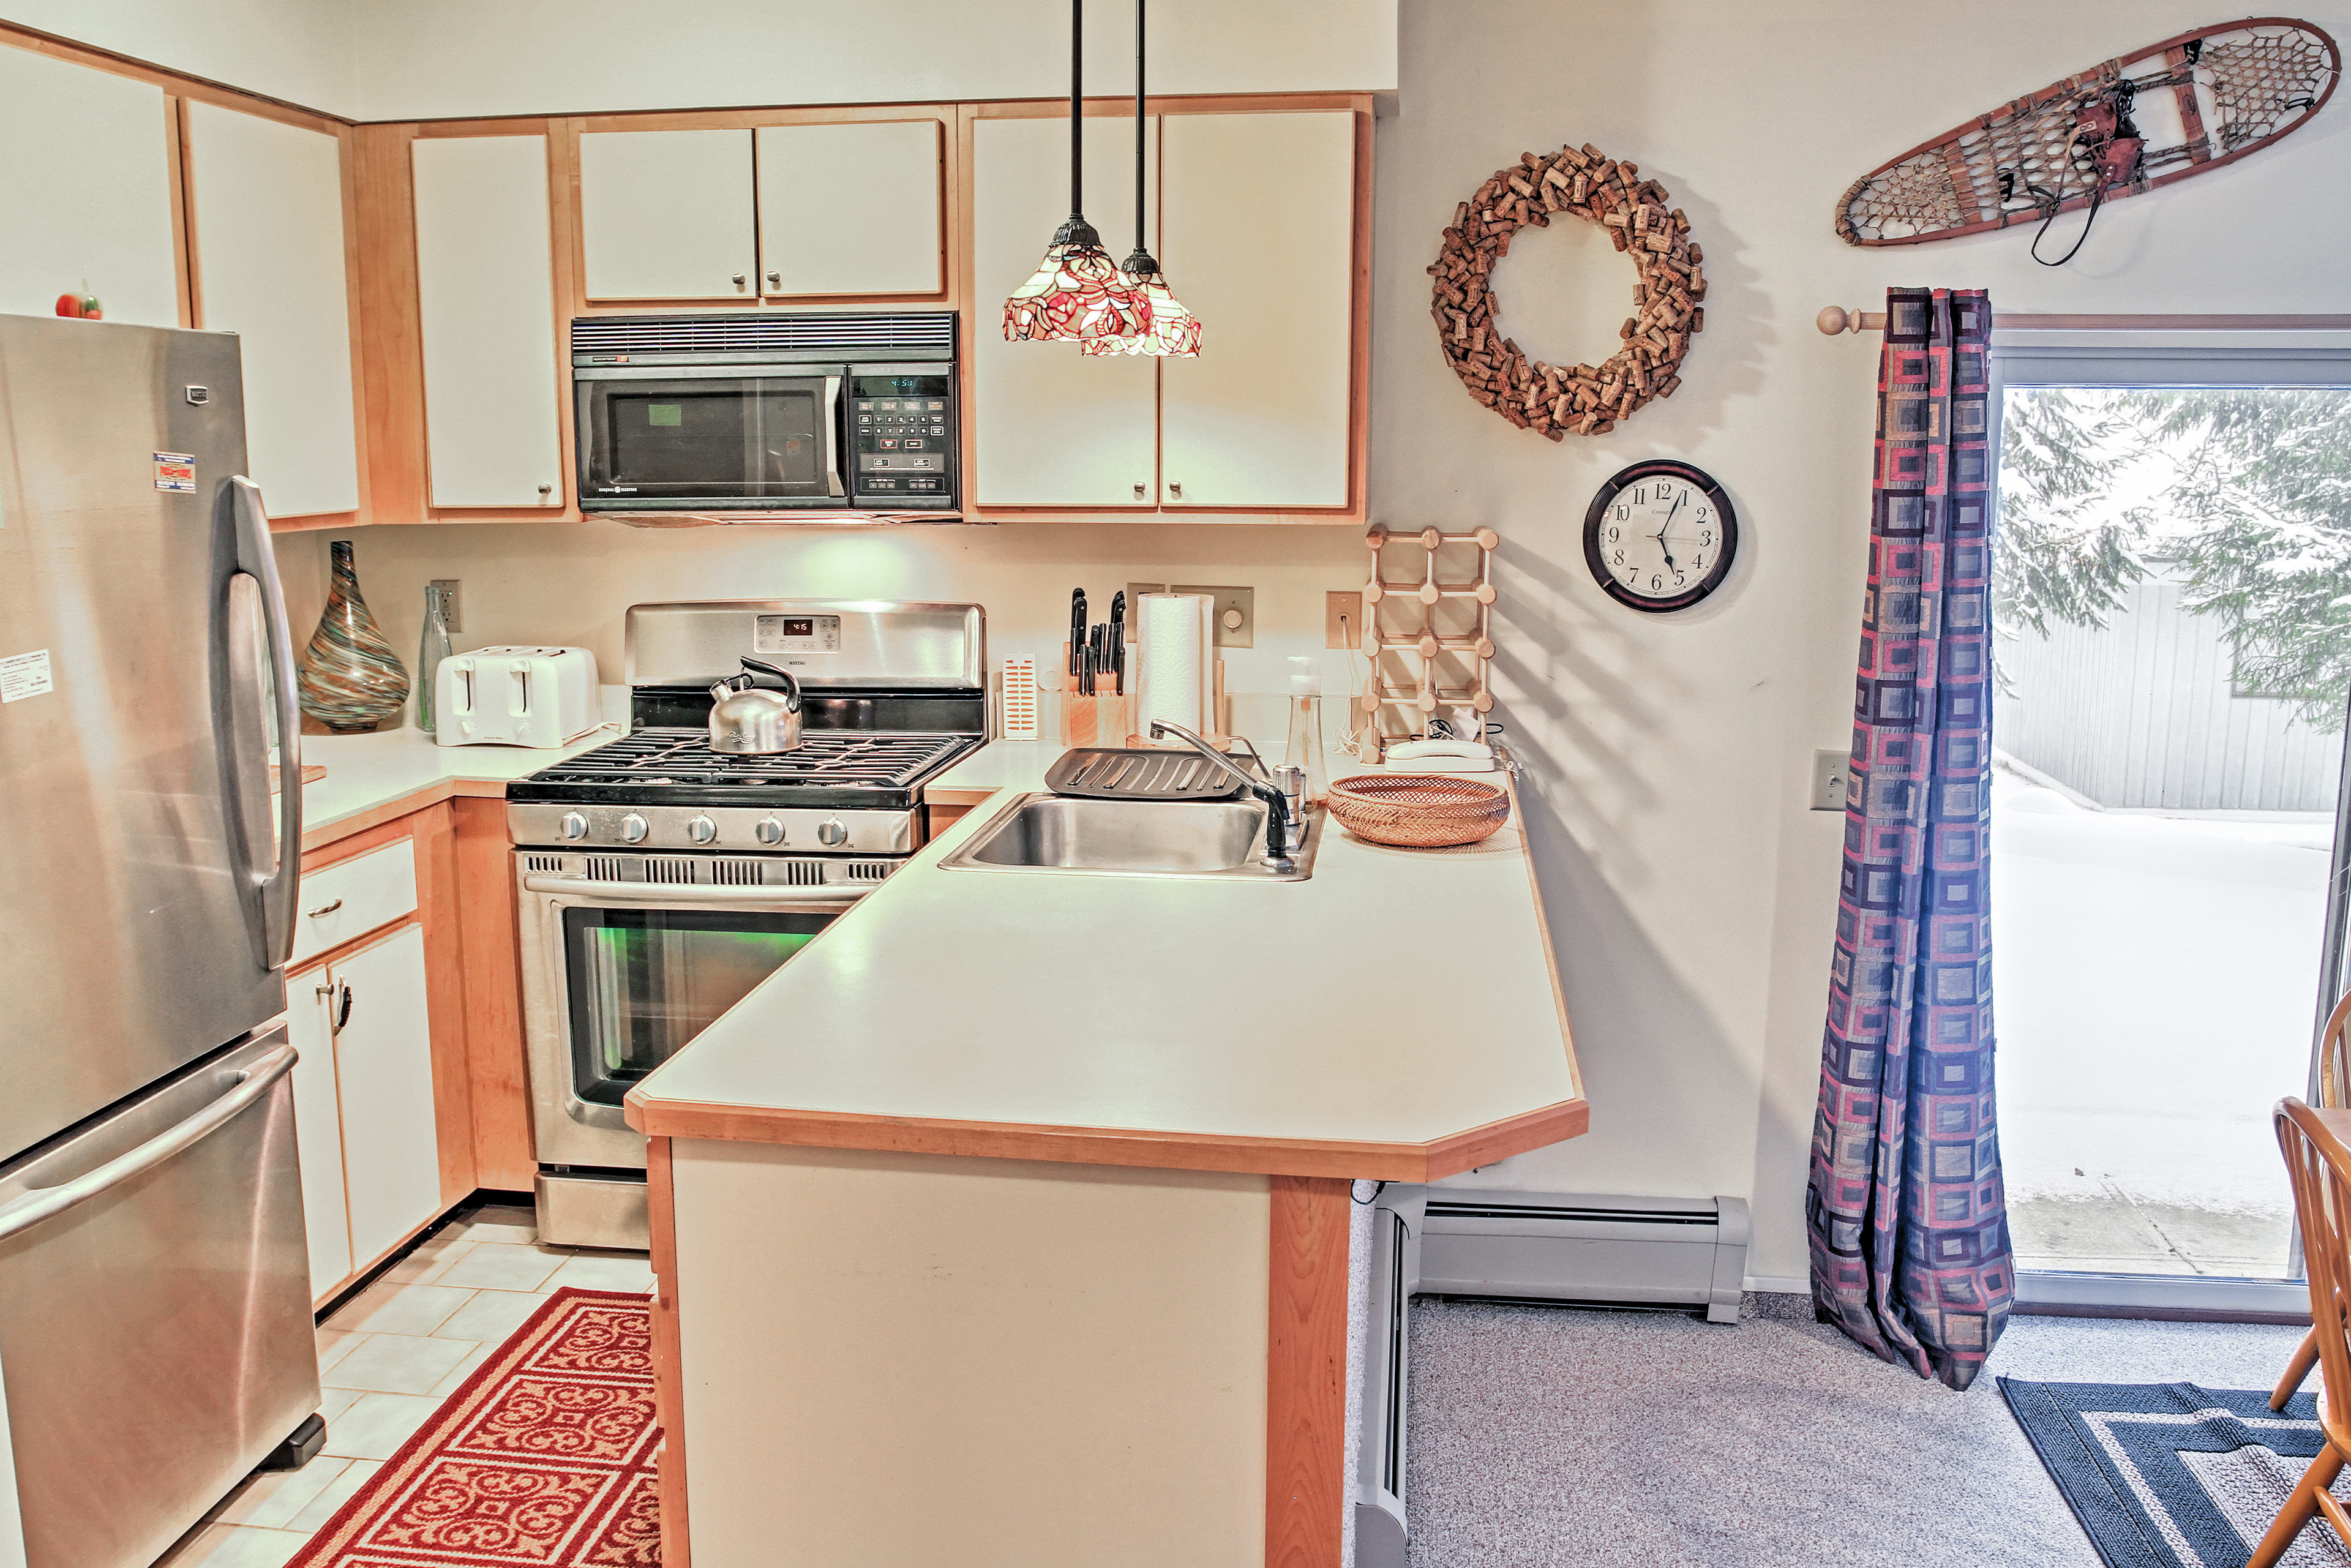 This kitchen comes fully equipped with updated, stainless steel appliances.